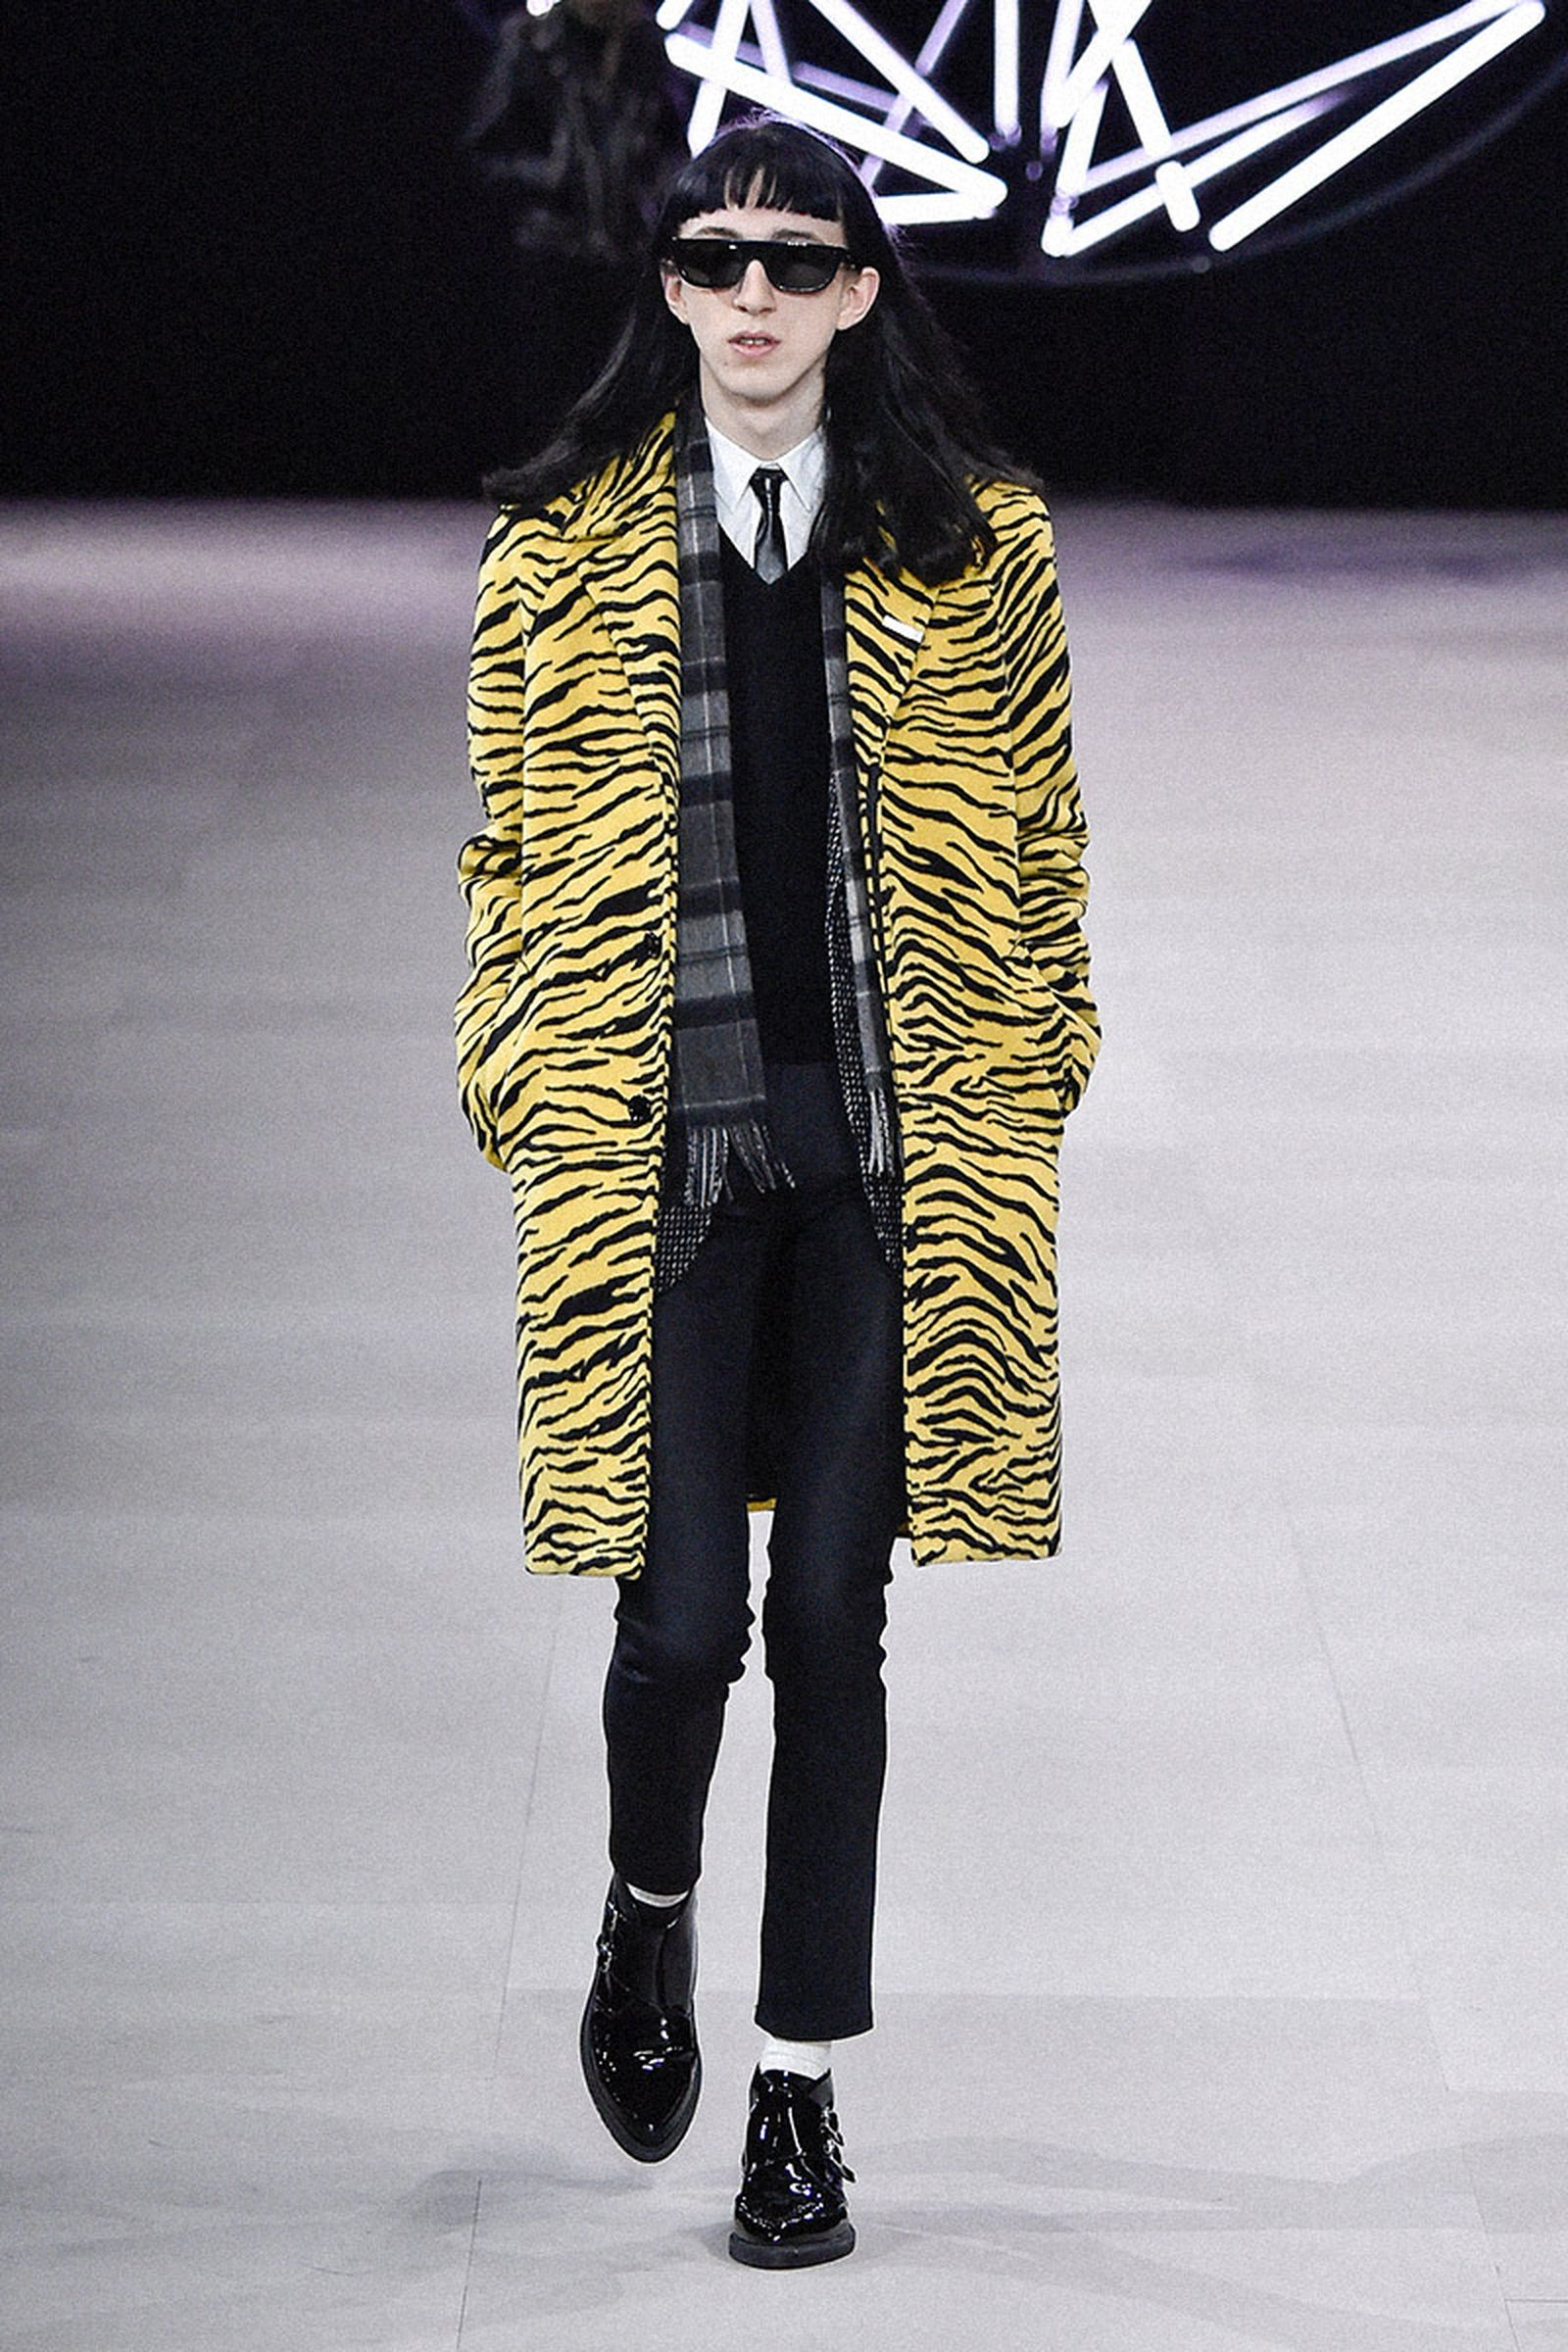 marc-jacobs-really-loves-his-celine-tiger-coat-so-do-we-01